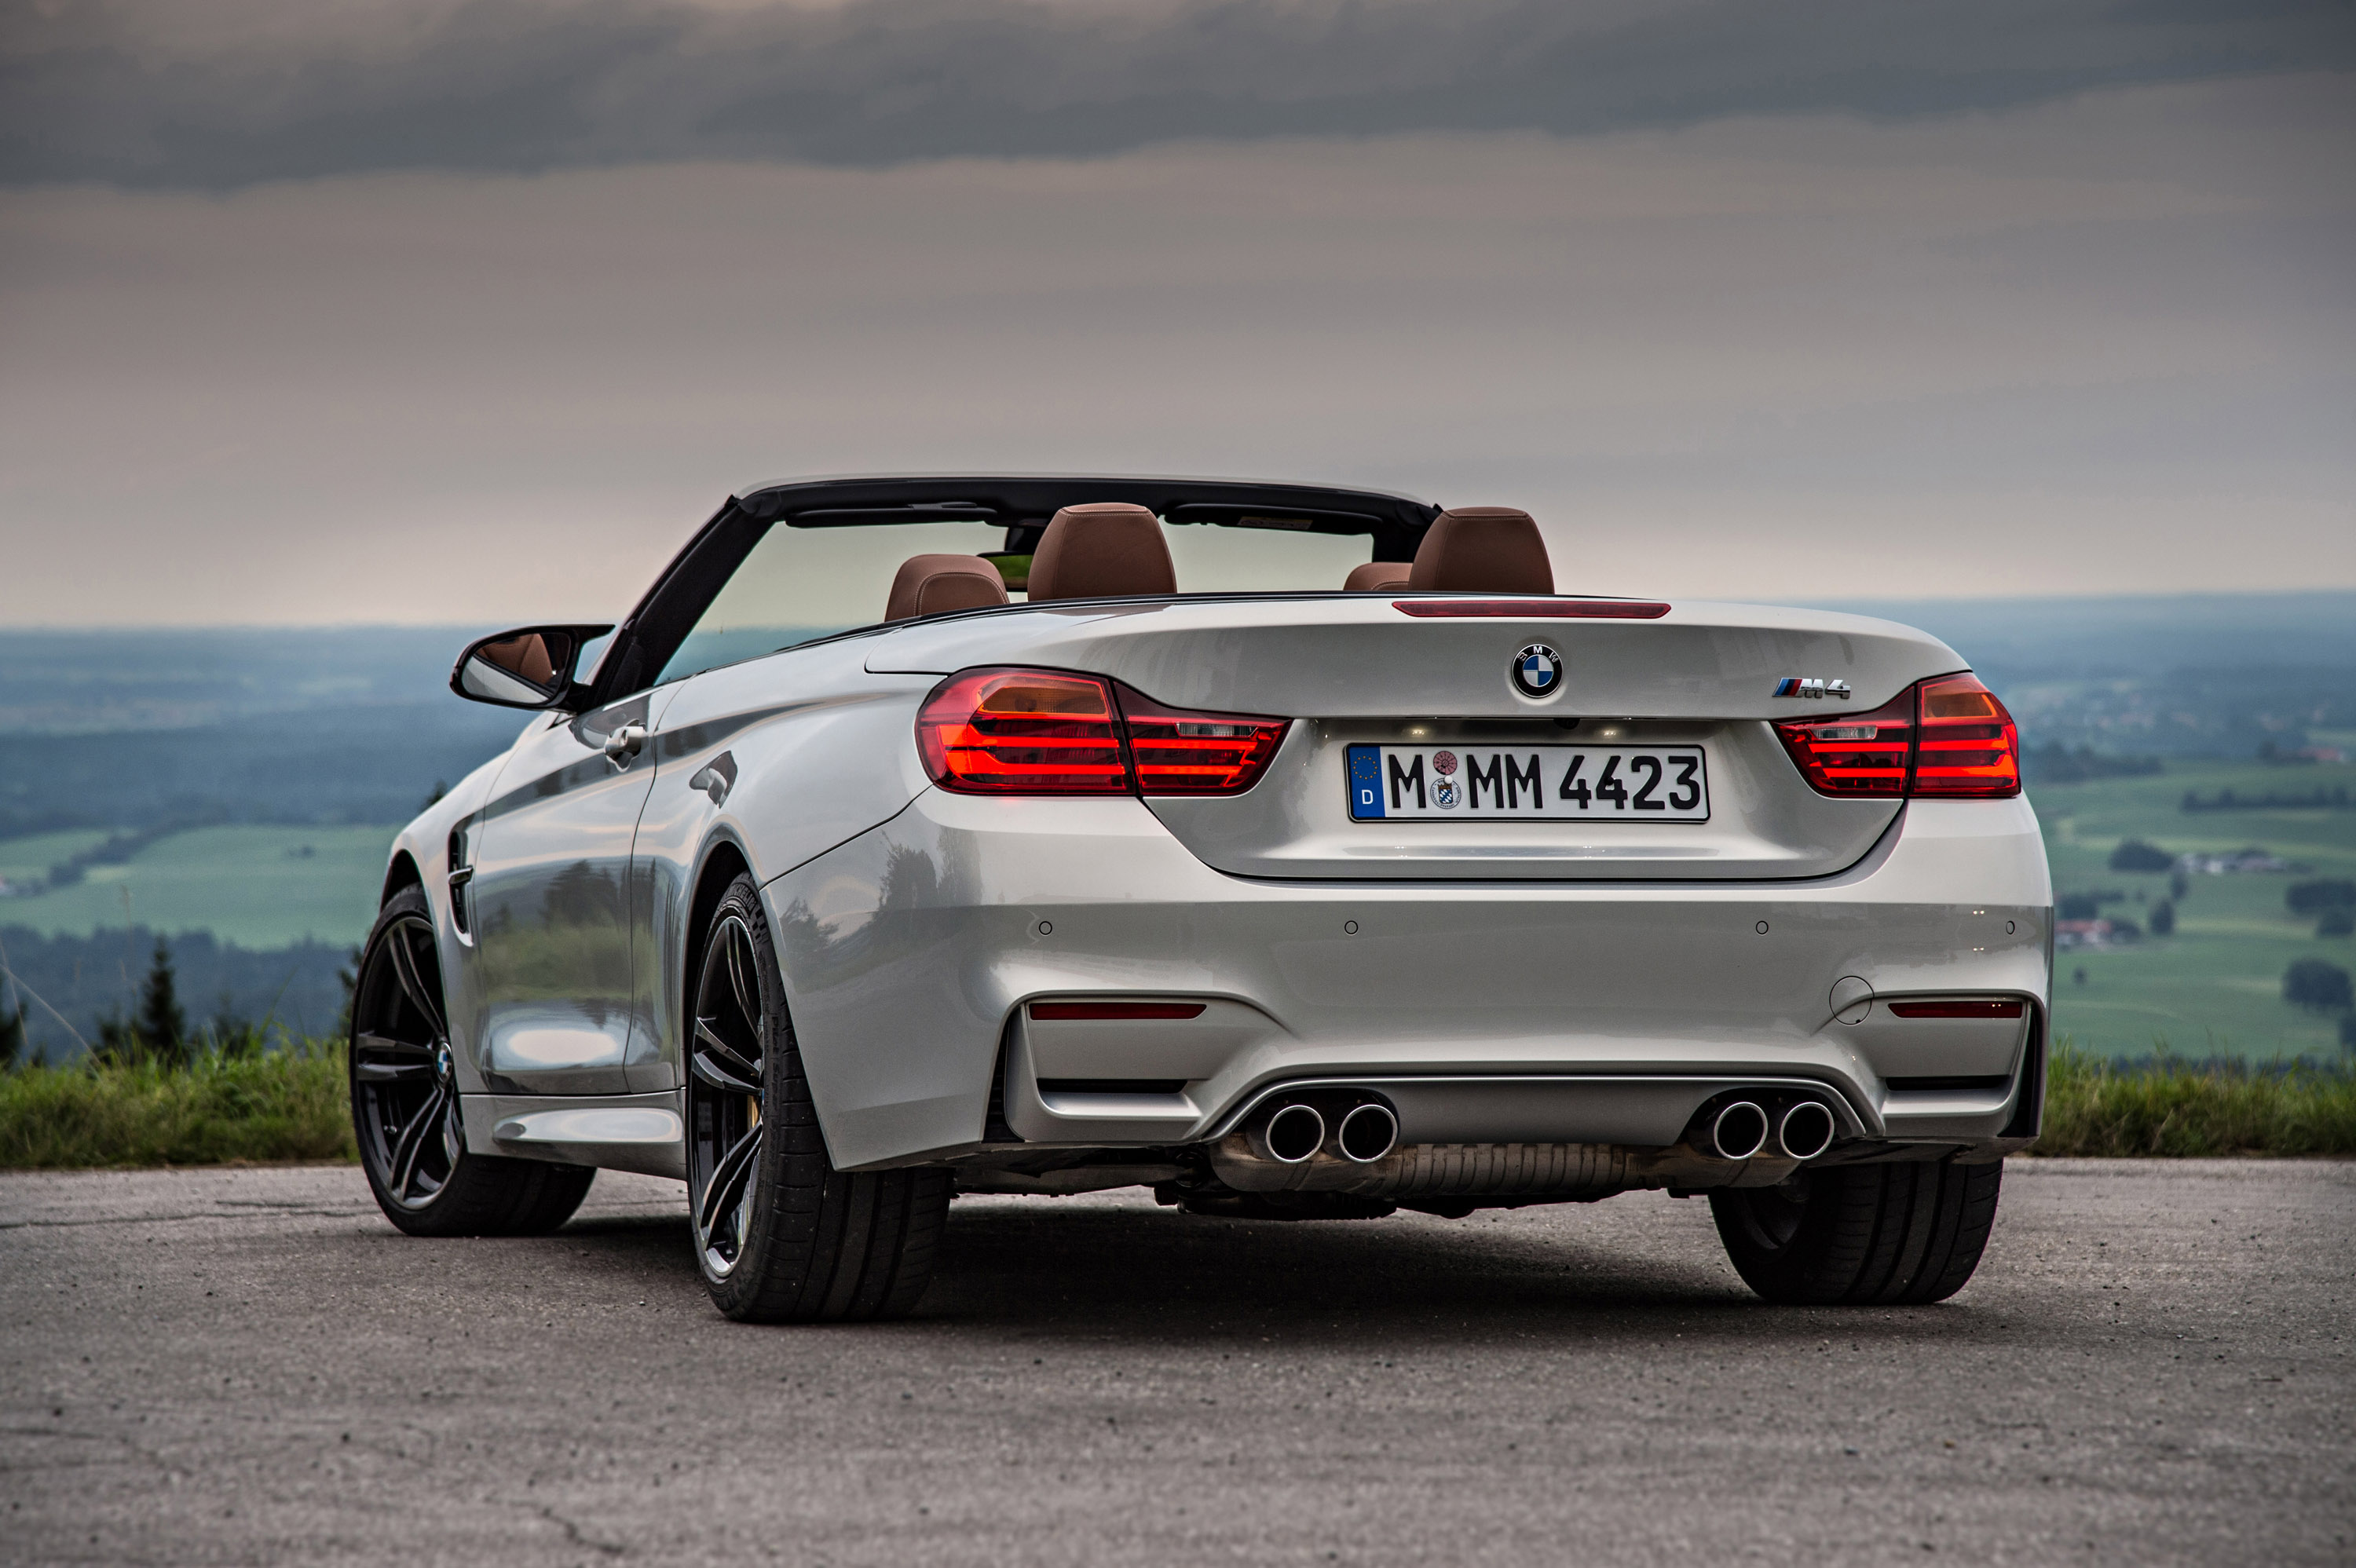 2015 BMW F83 M4 Convertible - Picture 109421